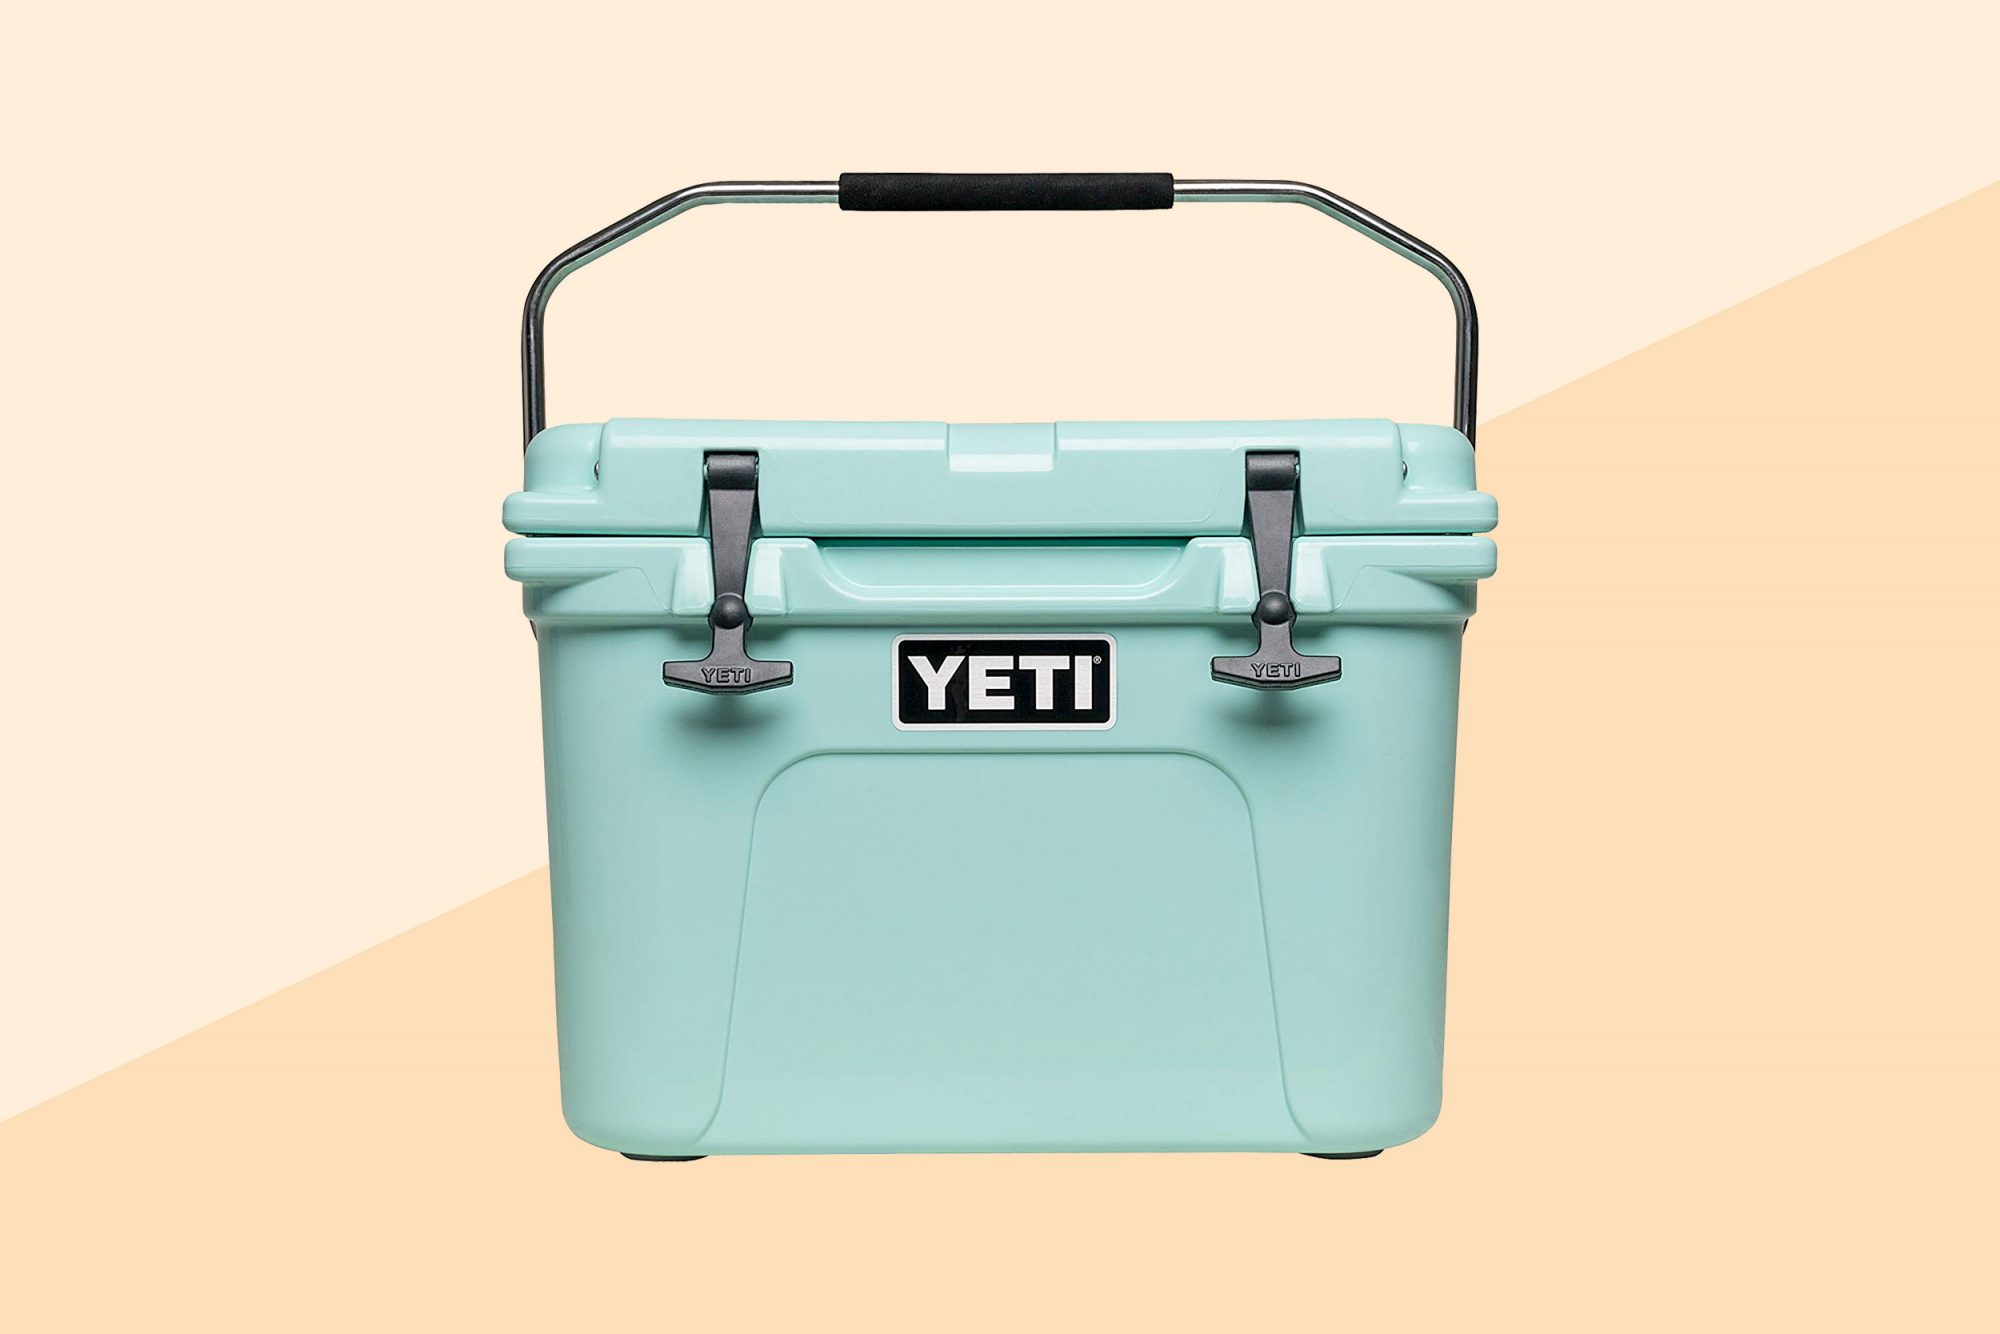 These Cult-Favorite Yeti Coolers Flew Off Amazon's Shelves Yesterday—But This One Is Still on Sale